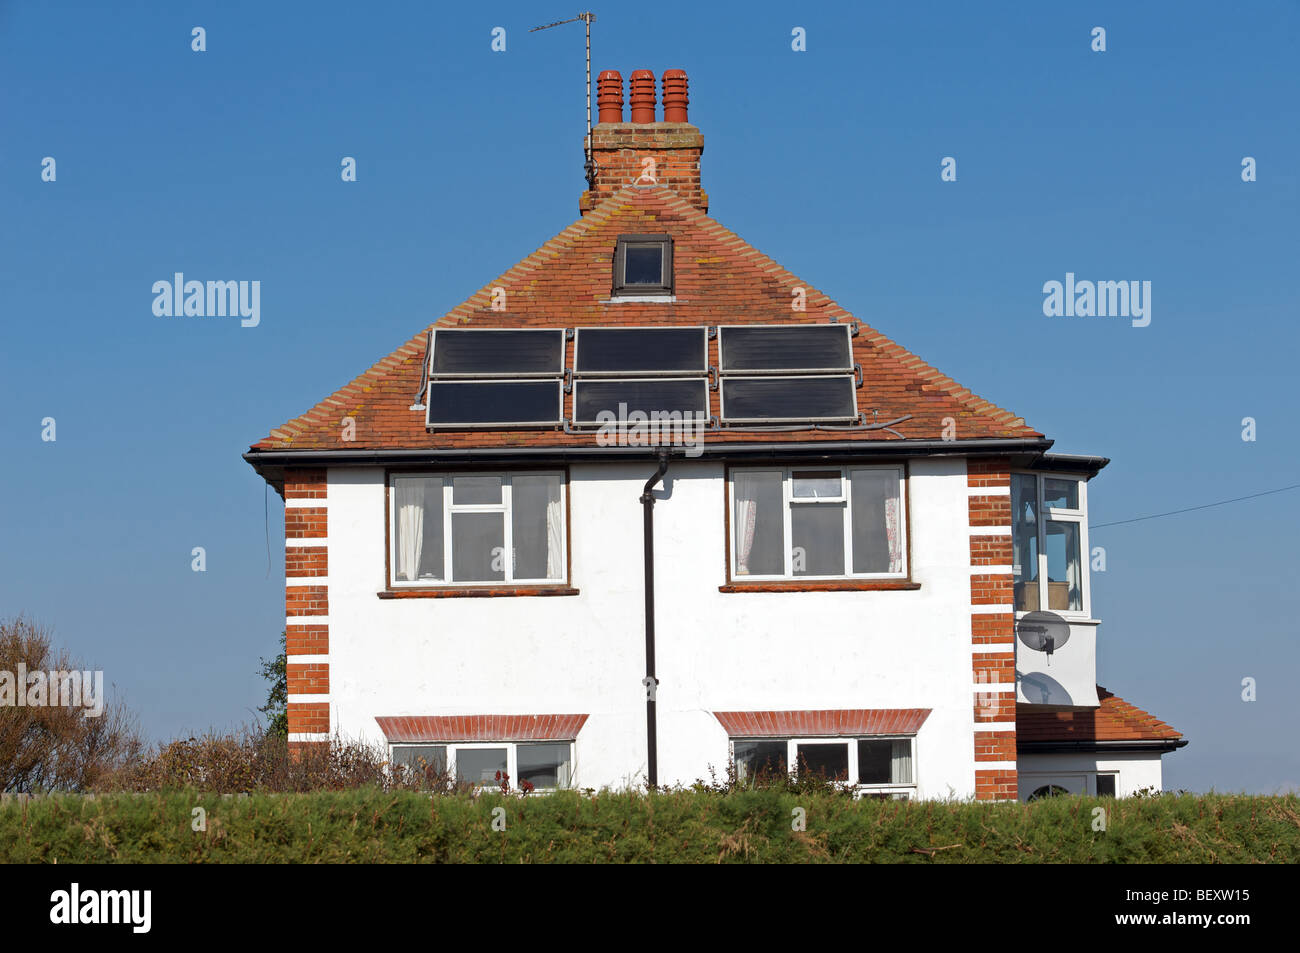 House with solar energy panels fitted to the roof - Stock Image